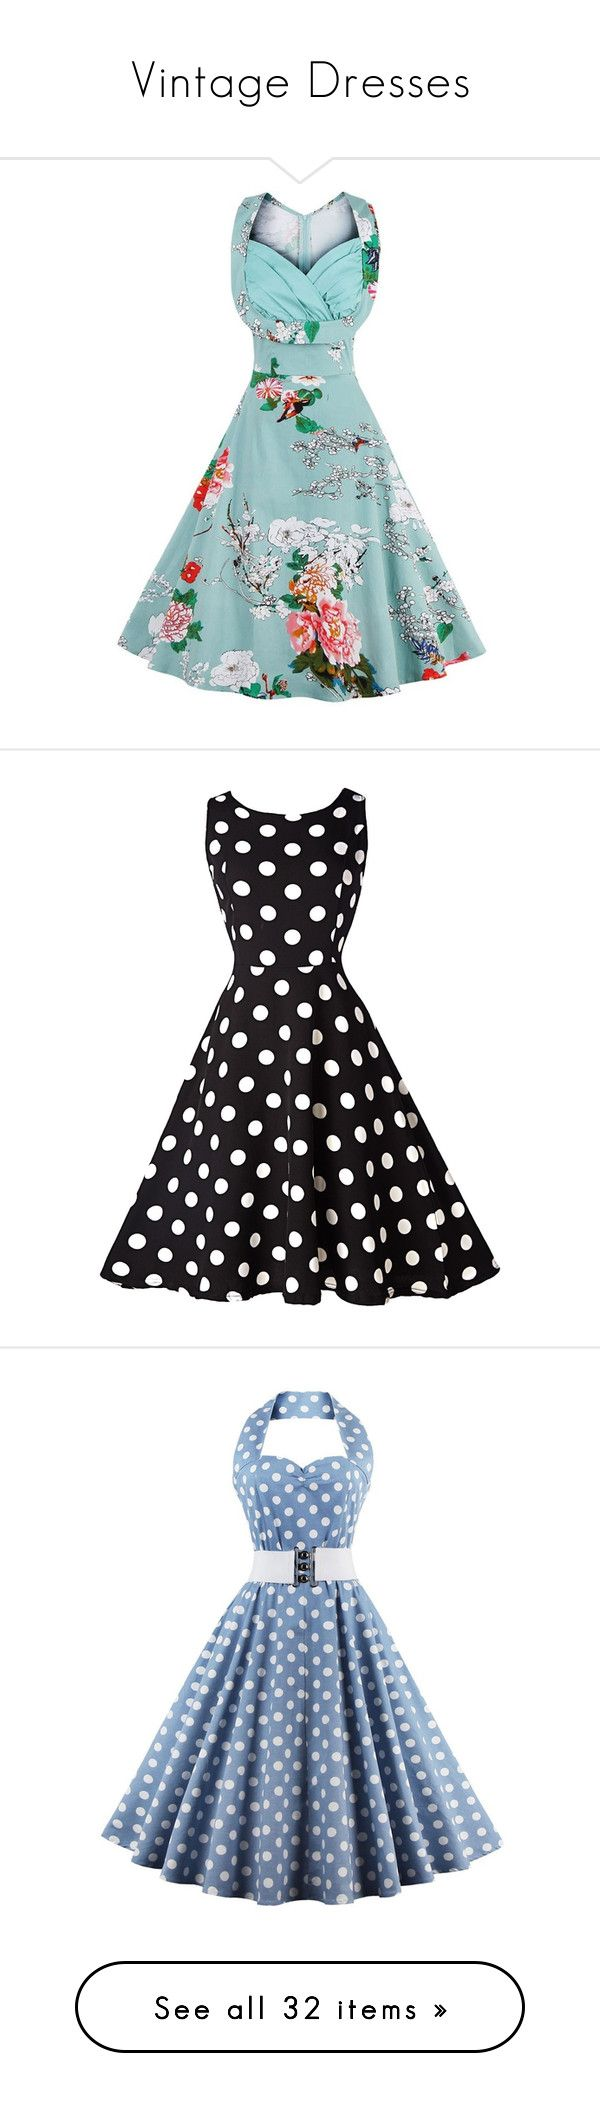 """Vintage Dresses"" by us-and-them ❤ liked on Polyvore featuring dresses, blue vintage dress, floral print midi dress, vintage floral dress, flower print dress, v neck midi dress, black, sleeveless swing dress, polka dot swing dress and print dress"